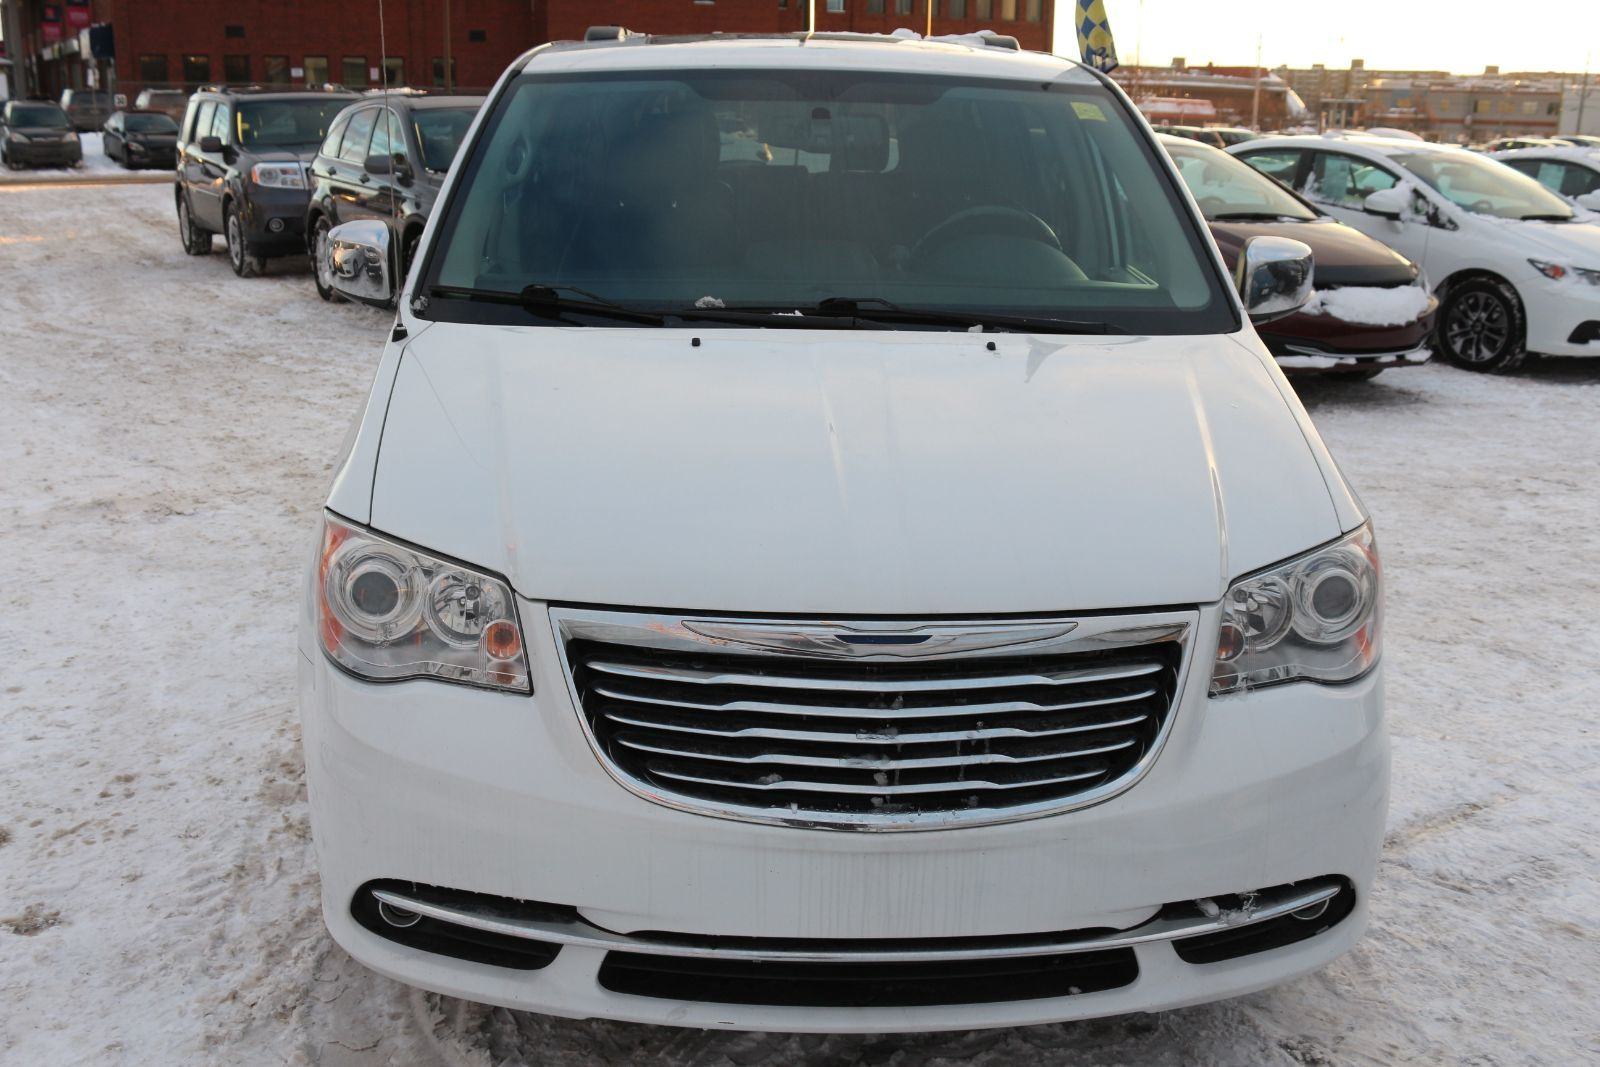 voyager news grand recall chrysler country and town h alert dodge caravan